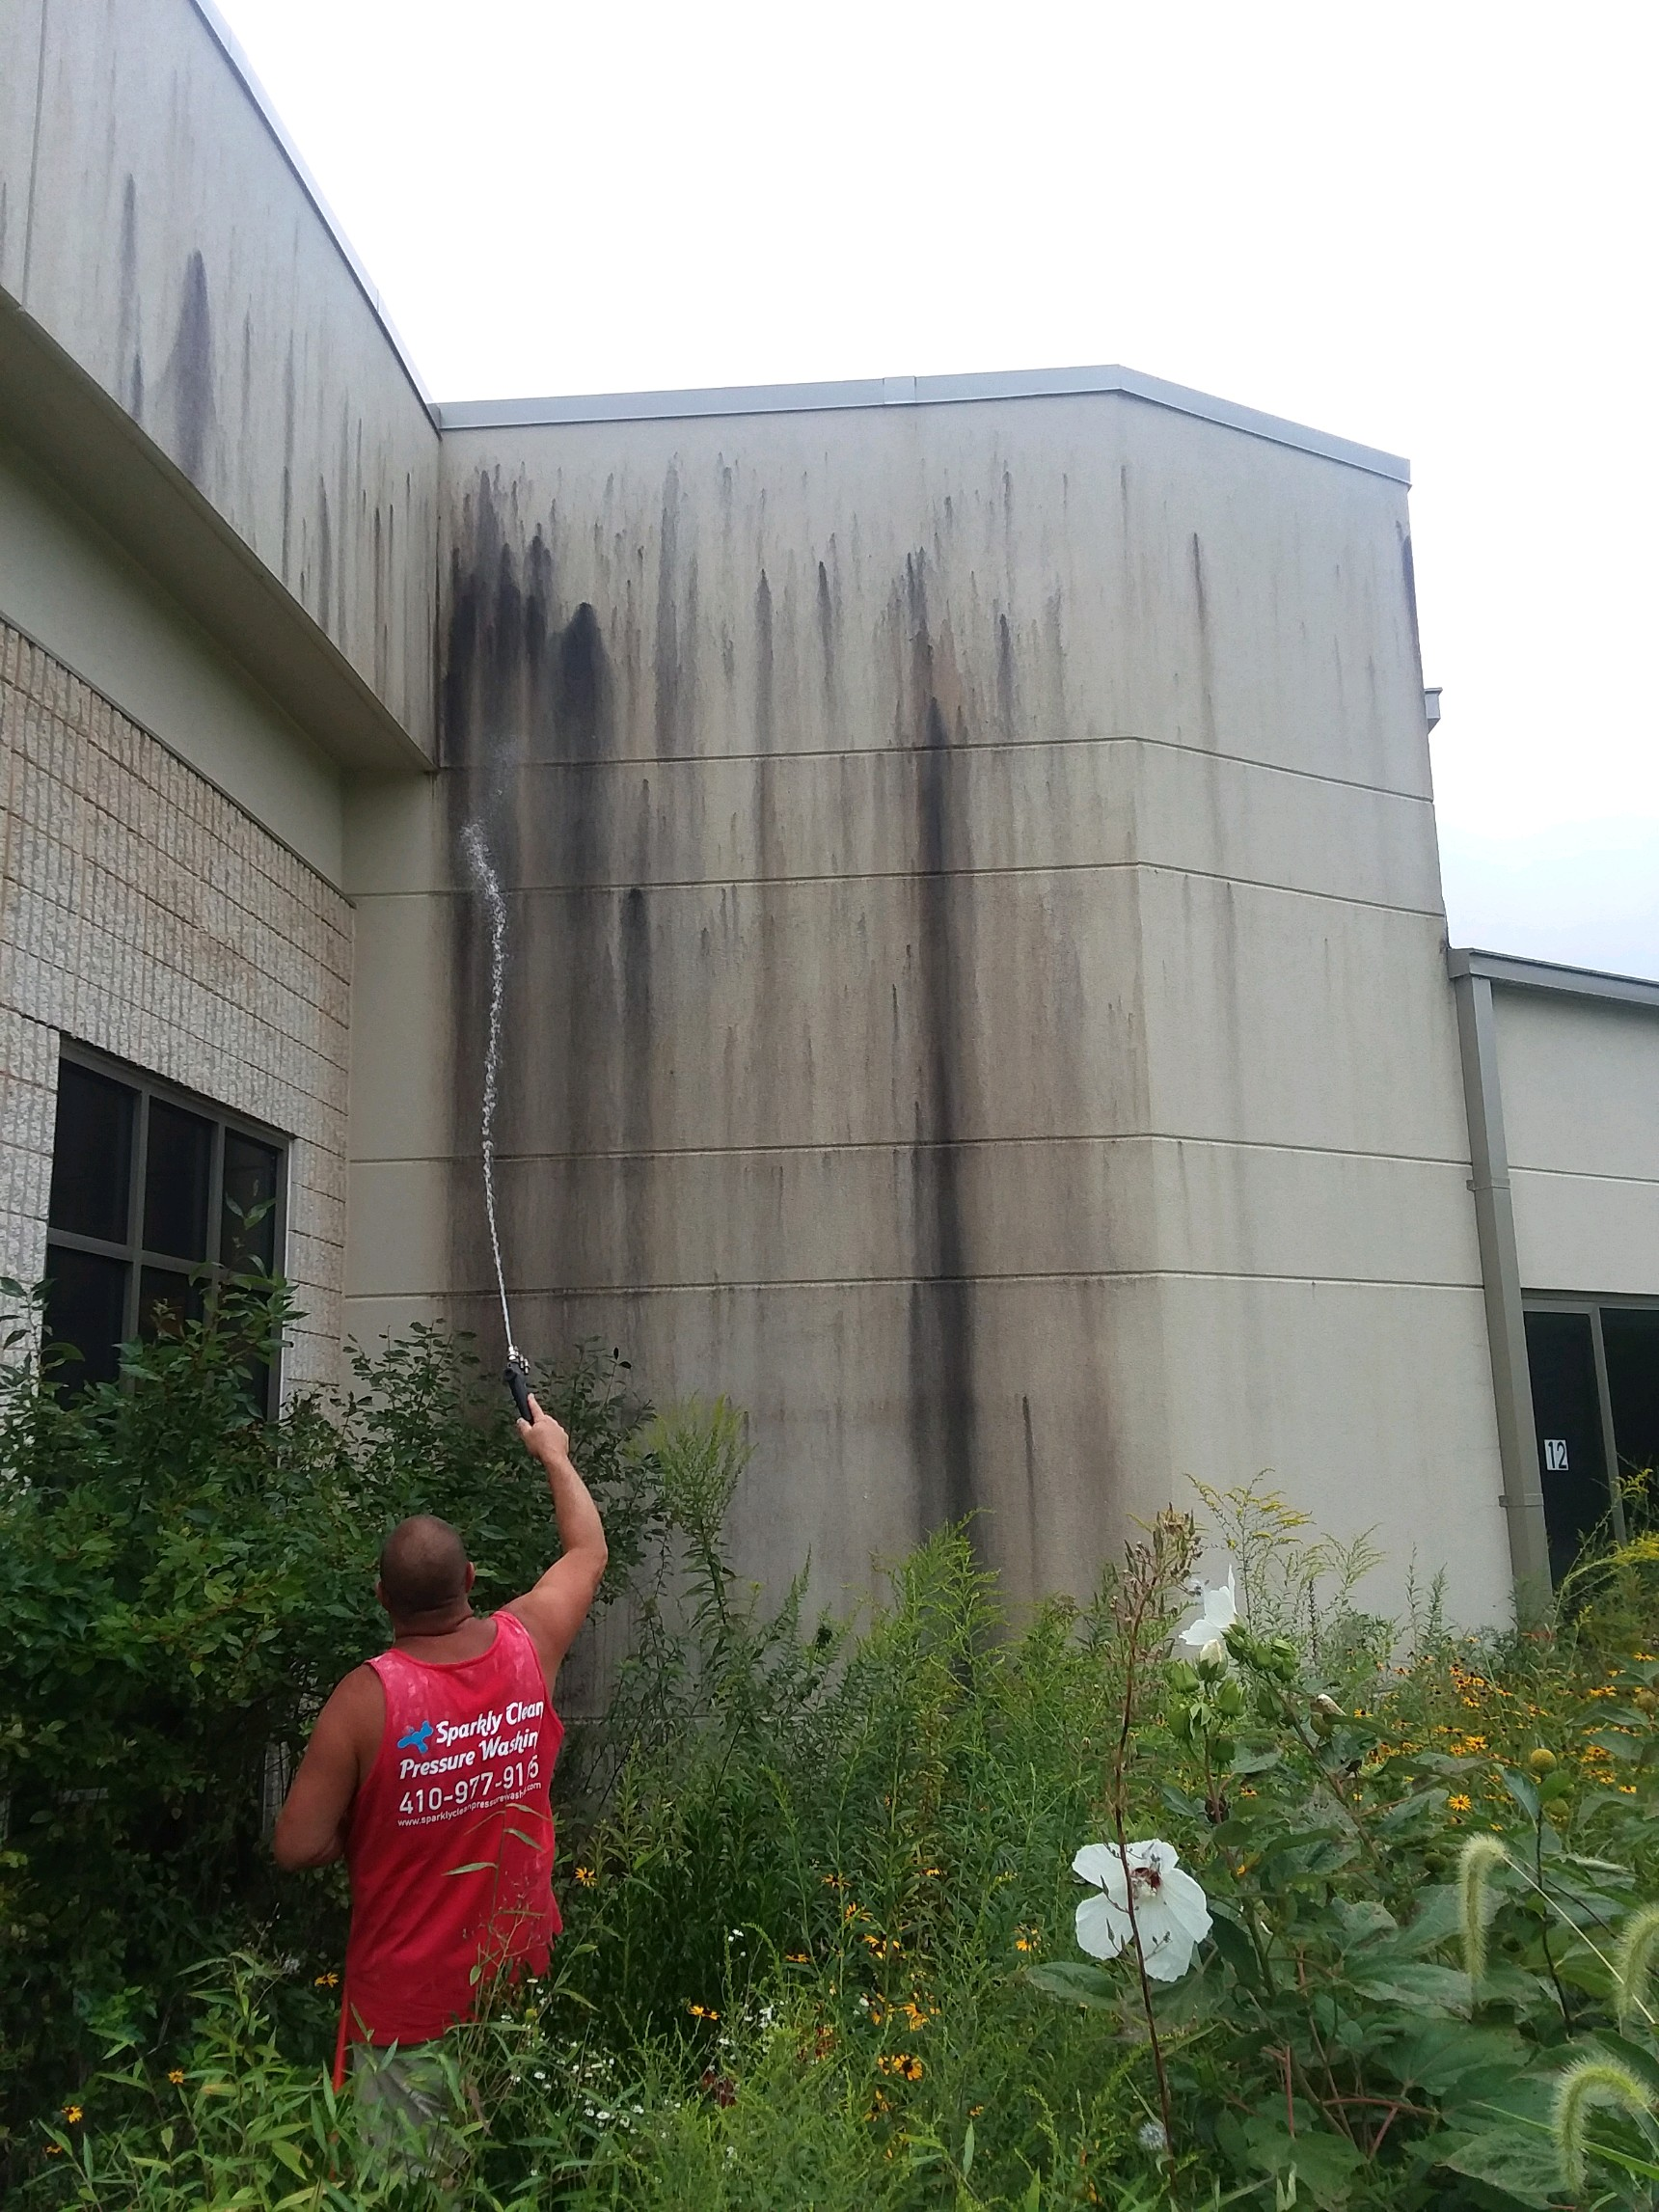 Commercial-Pressure-Washing-Office-Building-Before-1